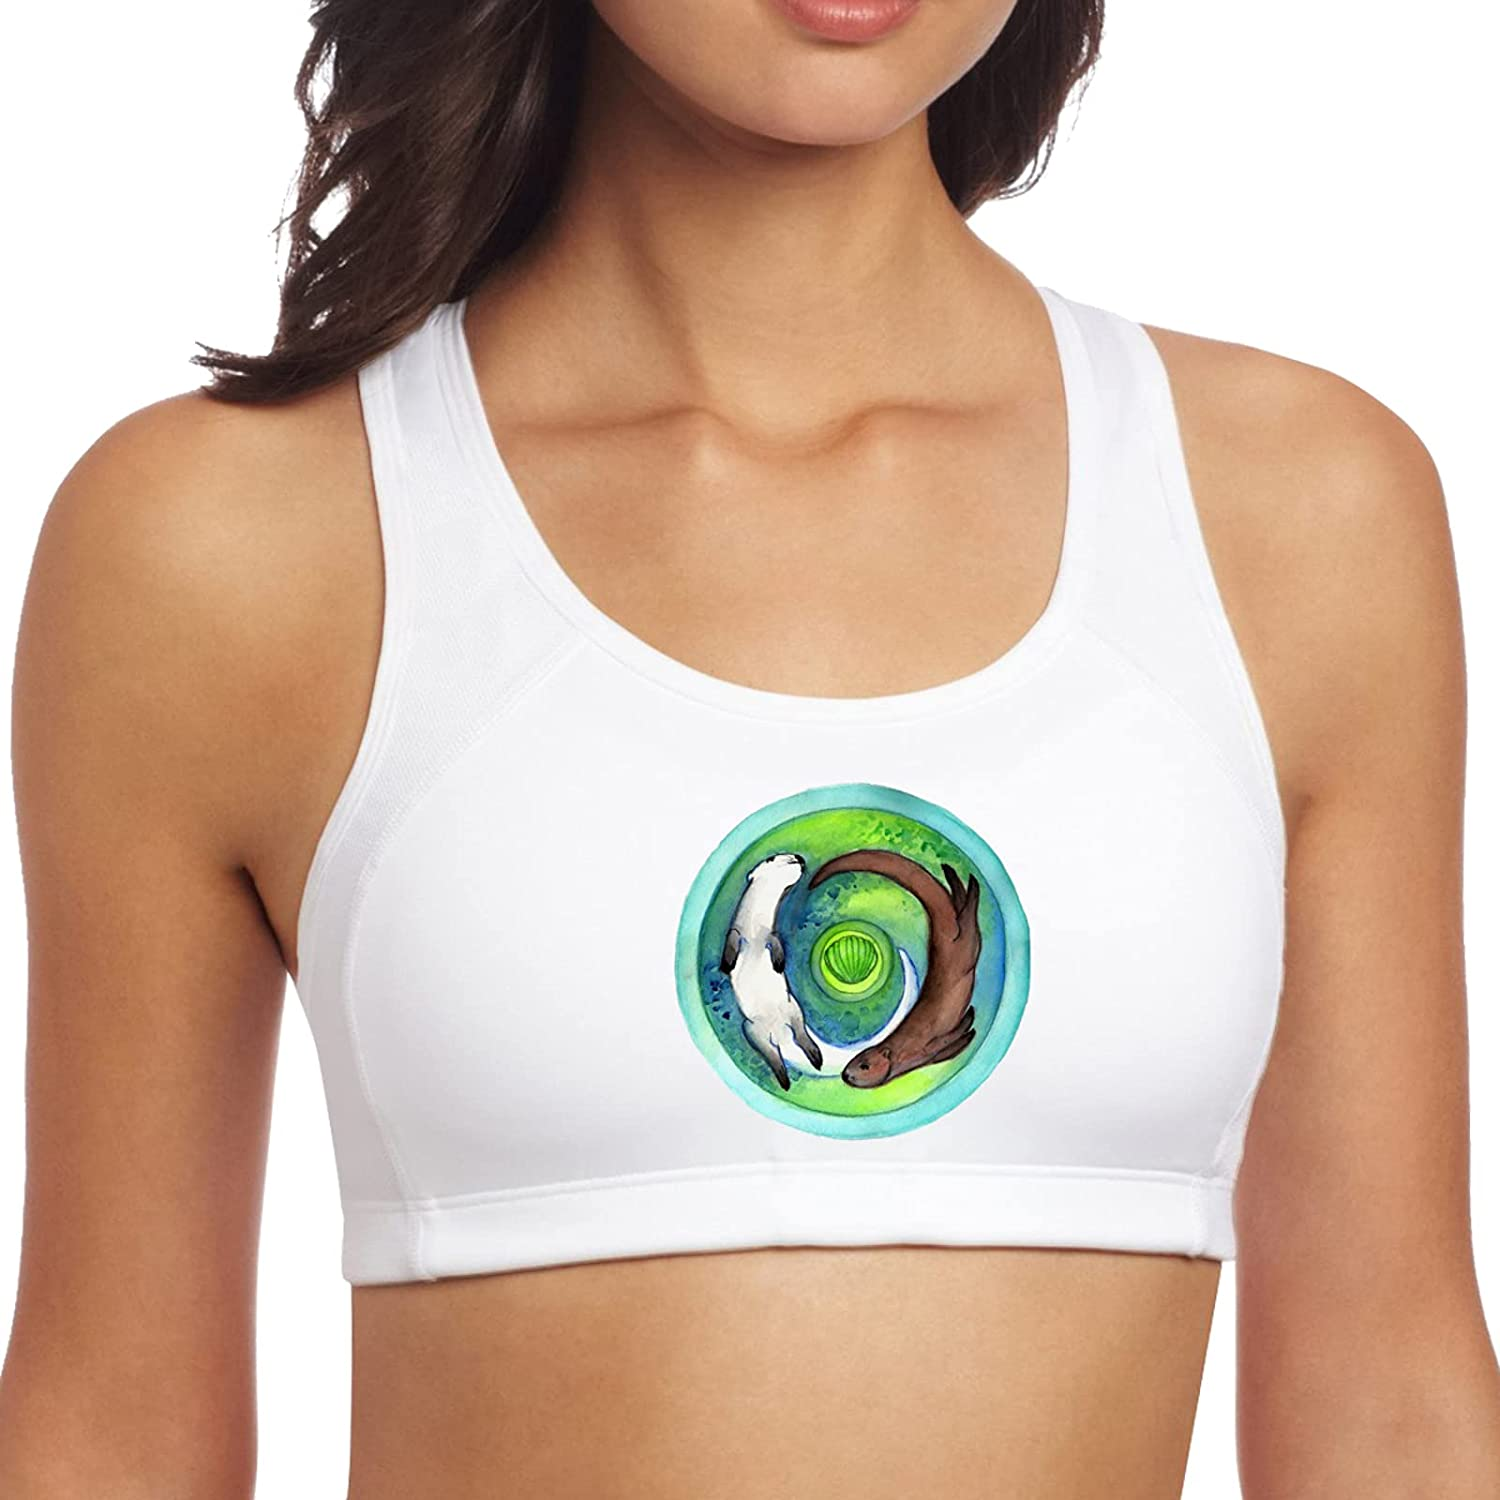 Sale price Yin Yang Otter Women's Popular shop is the lowest price challenge Yoga Seamless Sports Padded Leisure Tops